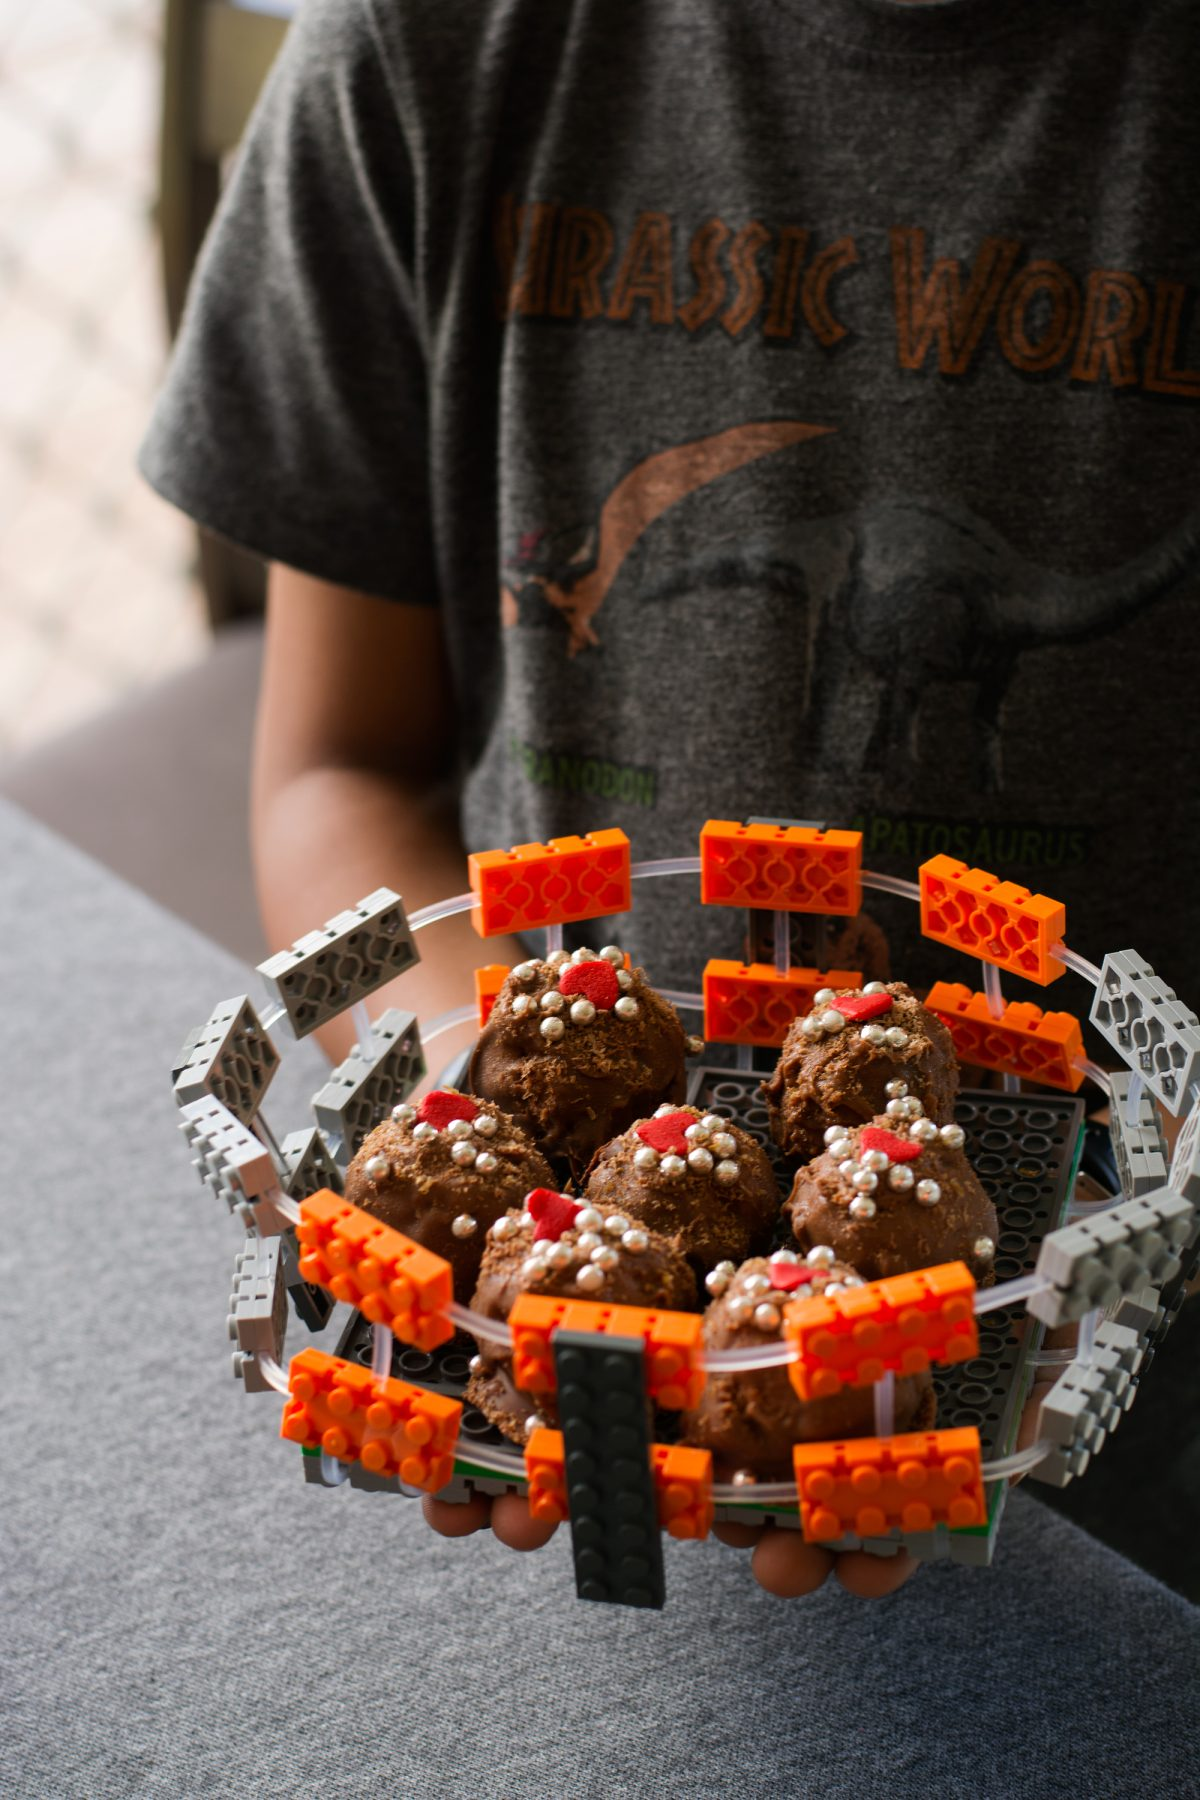 Flex it with Flexo + a Recipe for Chocolate Tim Tam Balls (and a Giveaway too!)